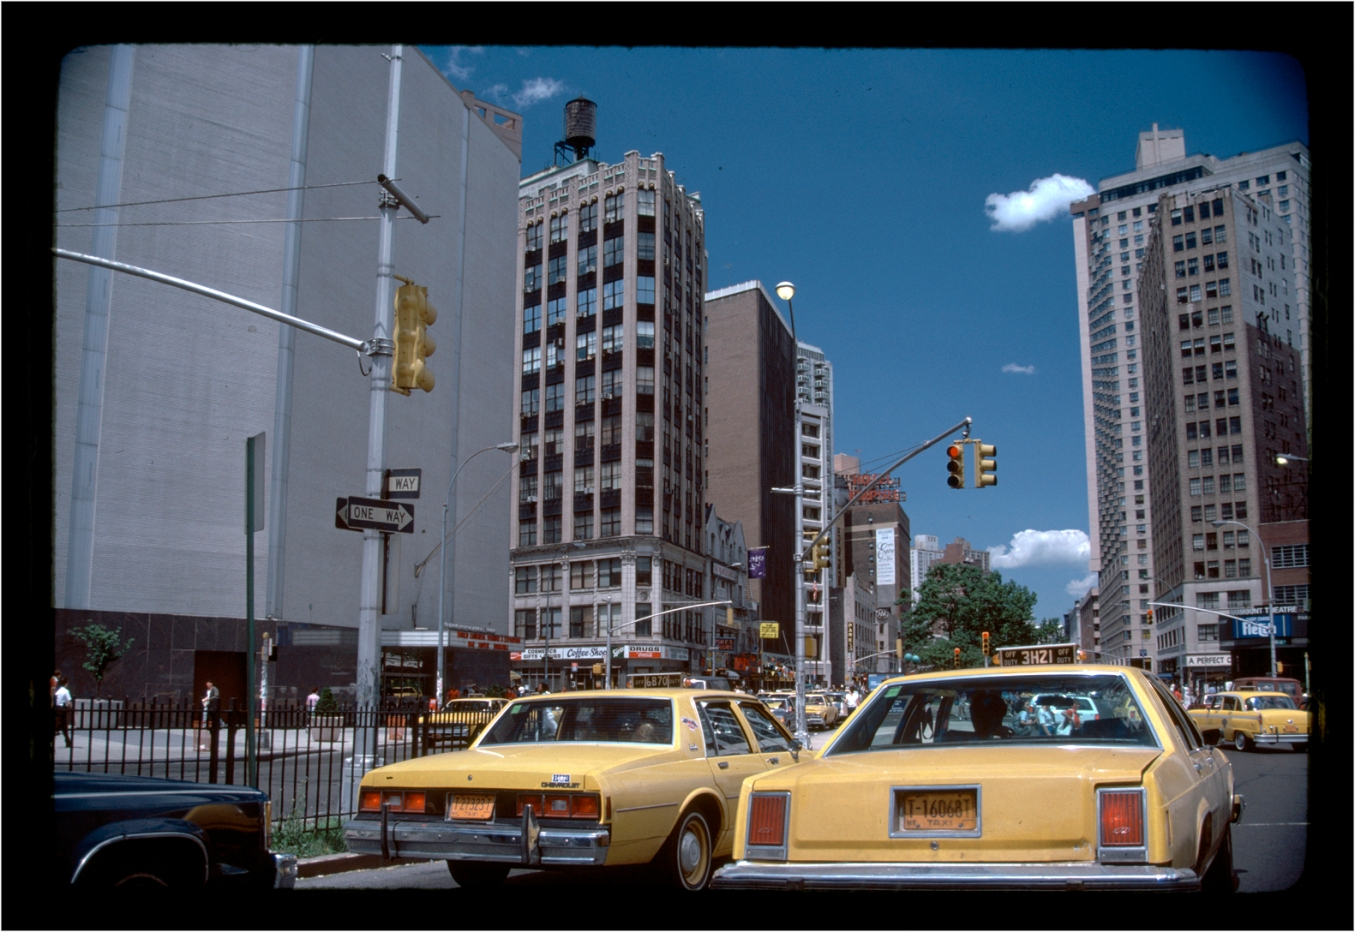 post-Taxis-Columbus-Circle-1985 copy